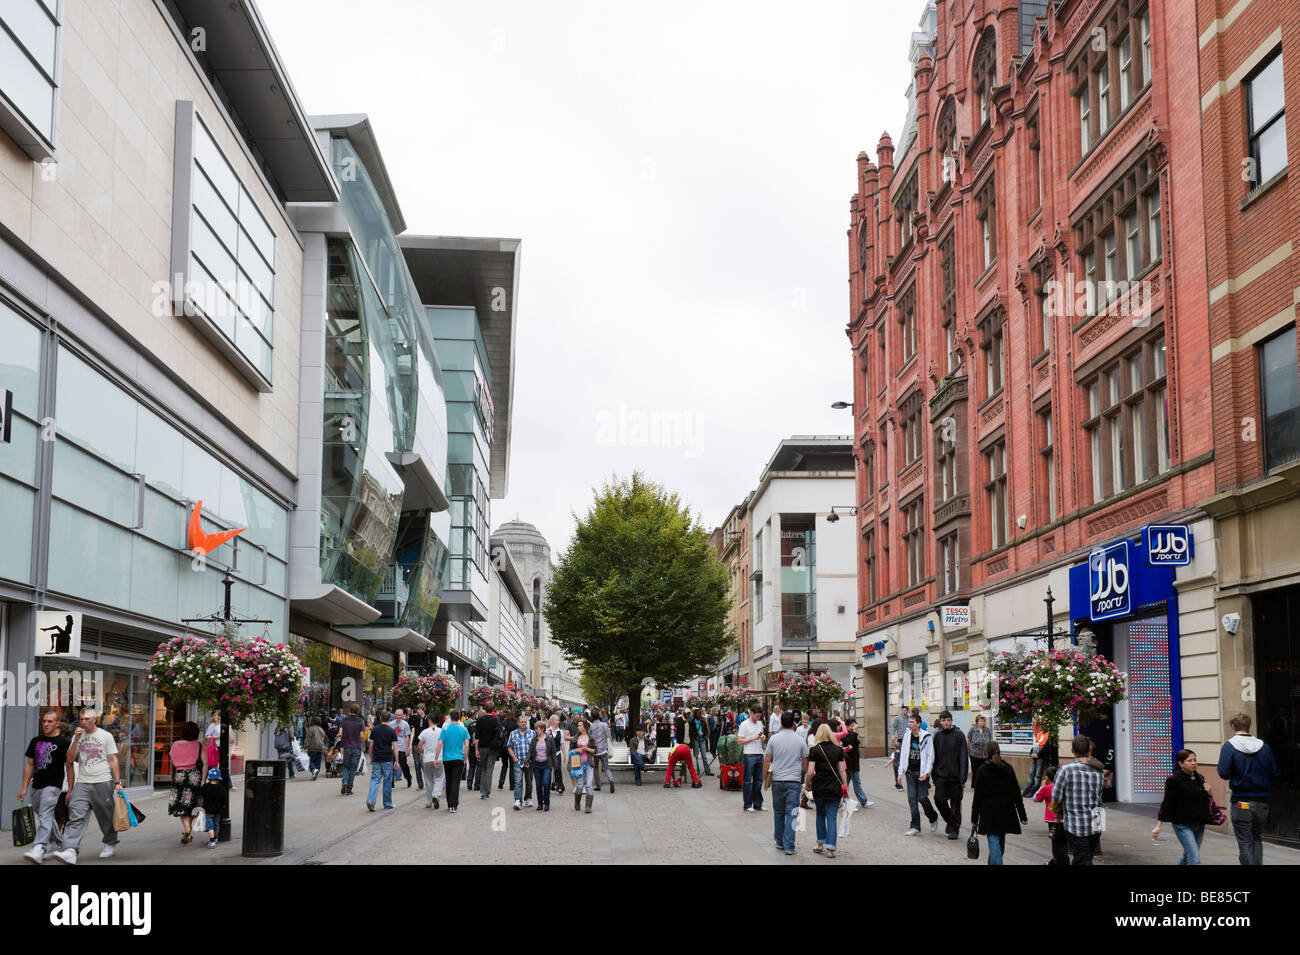 Major shops and department stores on Market Street near the Arndale Centre, Manchester, England - Stock Image